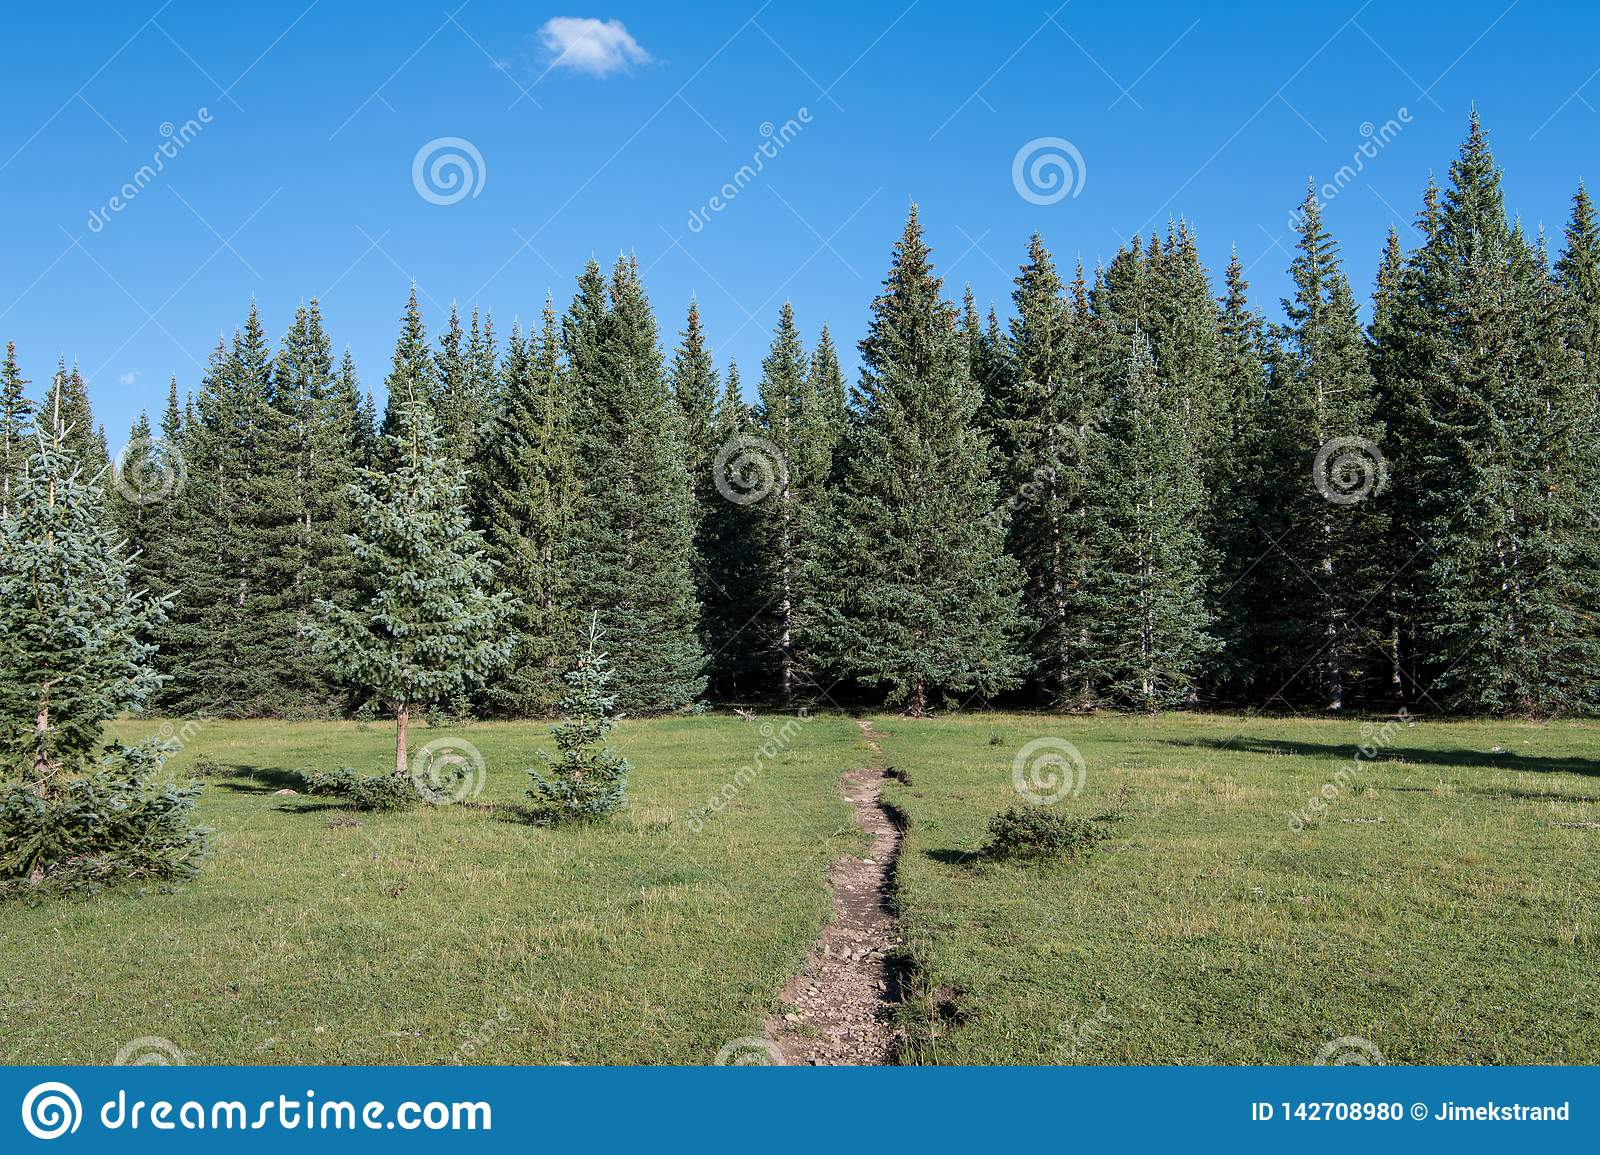 Hiking trail crossing a beautiful alpine meadow towards a forest of spruce and fir trees under a blue sky